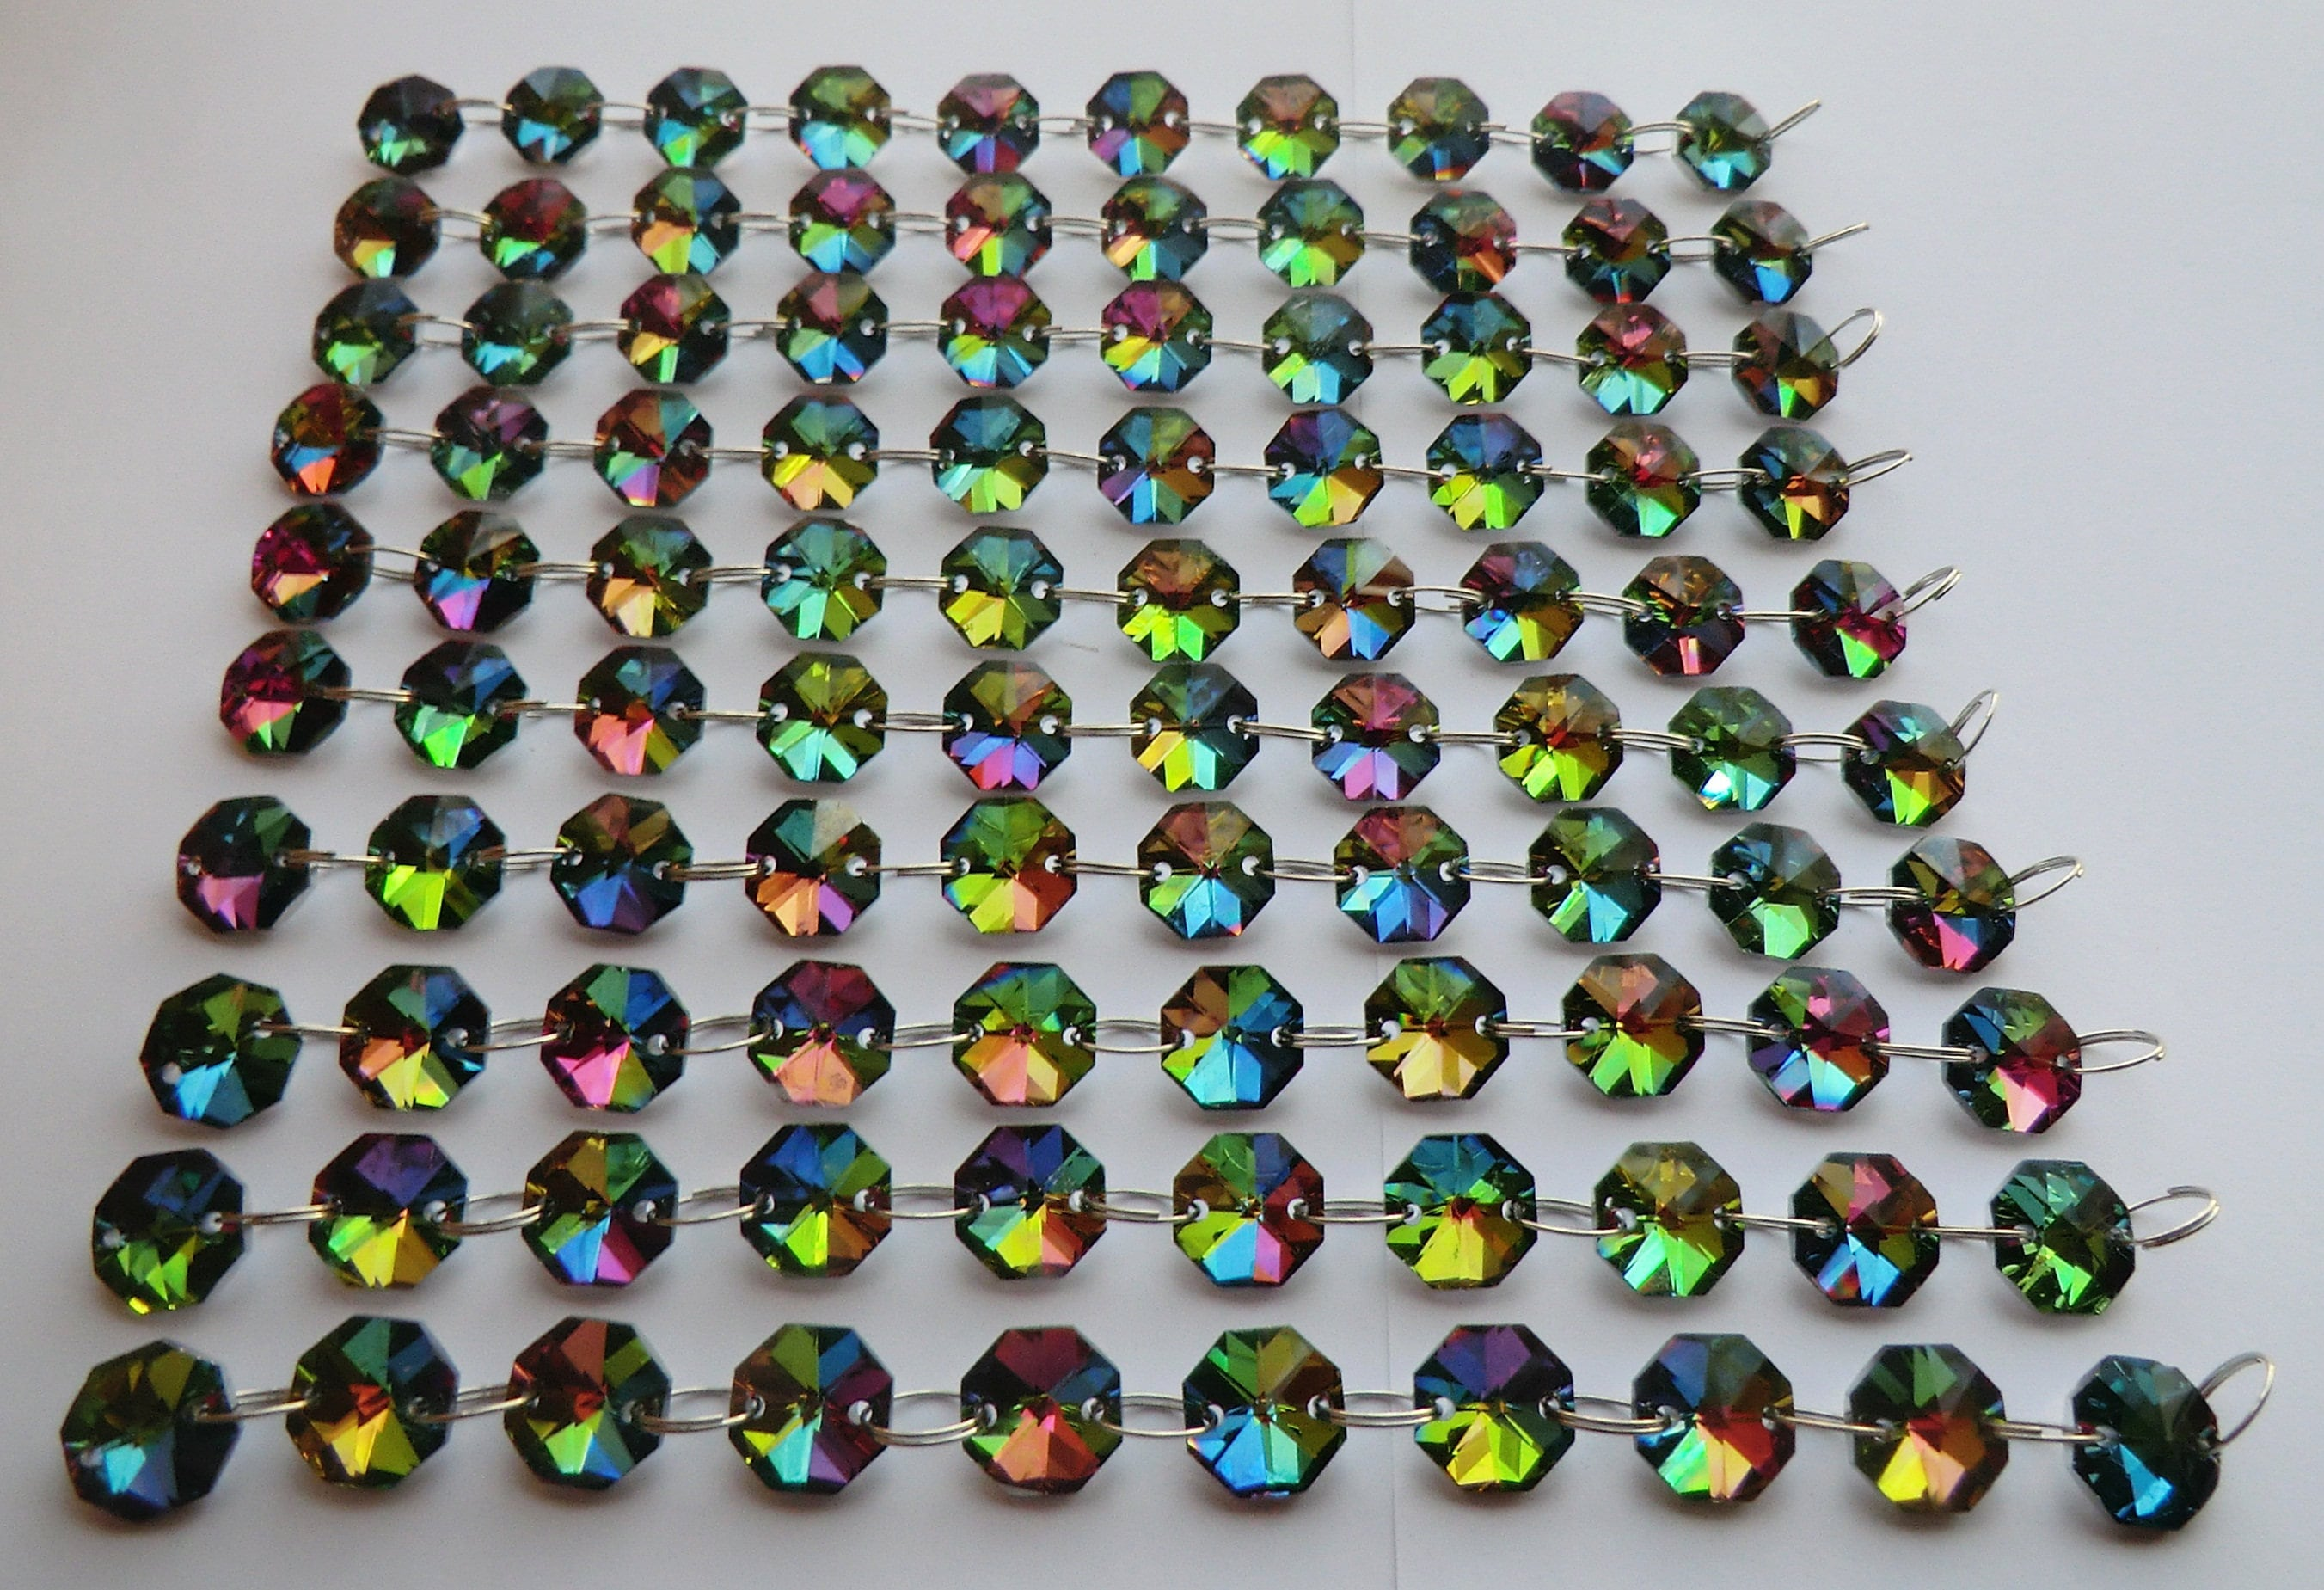 Image of 14mm Octagon Vitrail AB Chandelier Prisms Drops Glass Crystals Light Parts Droplets Beads Christmas Tree Wedding Decorations Garland Makers